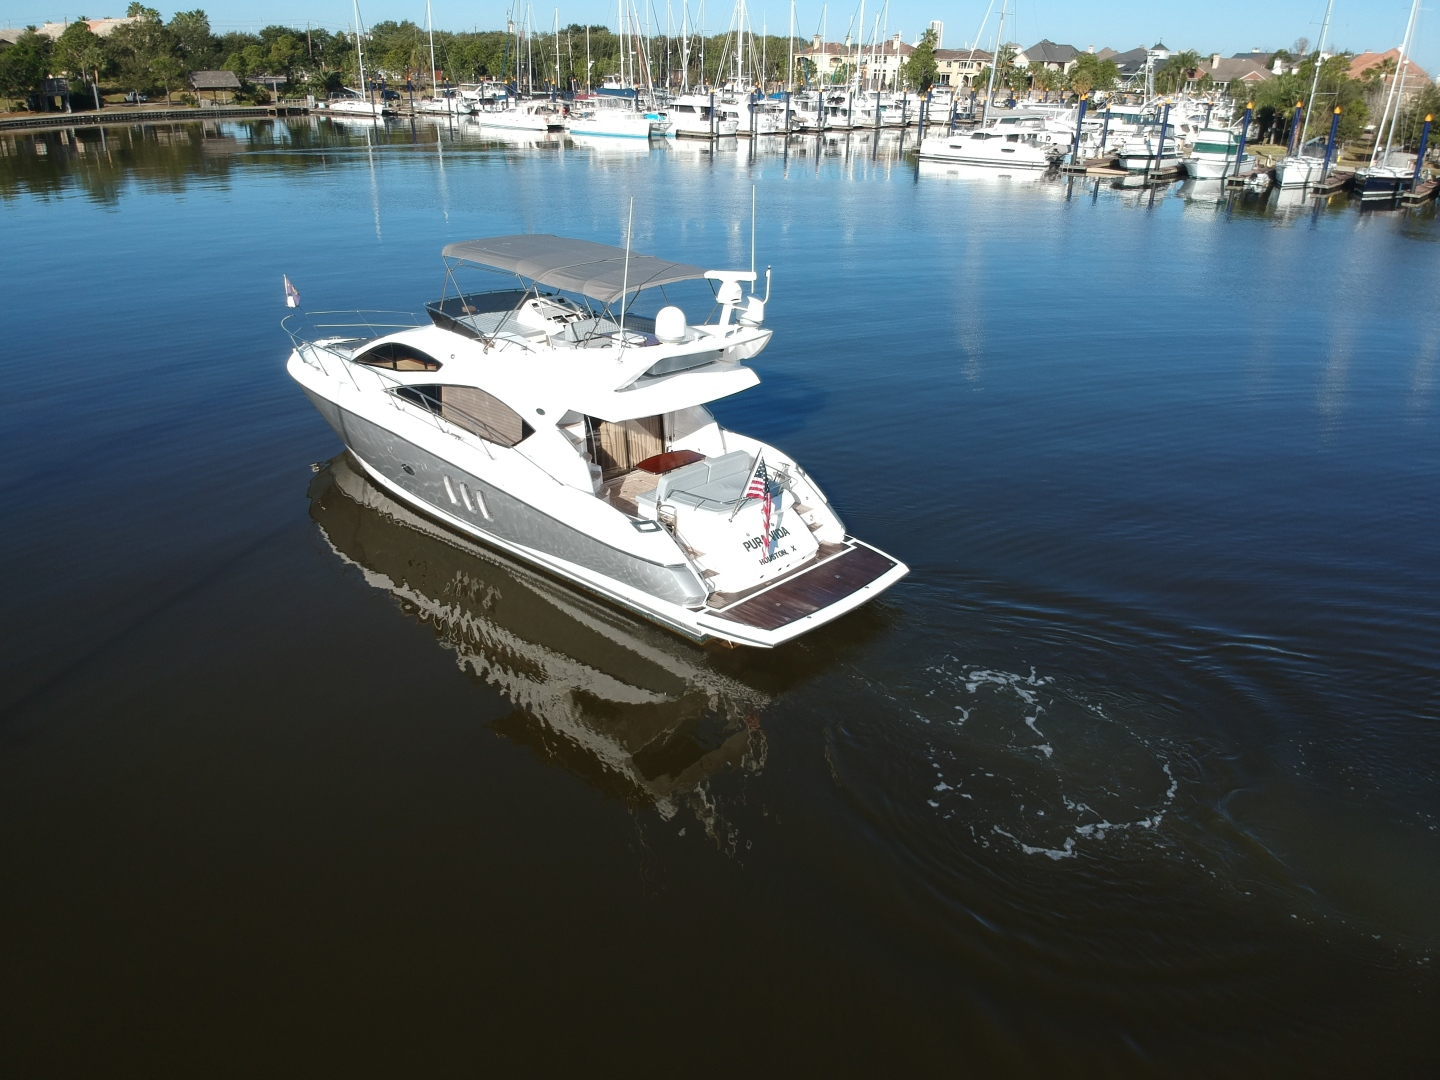 Sunseeker-52 Manhattan 2009-Pura Vida Kemah-Texas-United States-Sunseeker 52 Manhattan 2009 Pura Vida-1584064 | Thumbnail